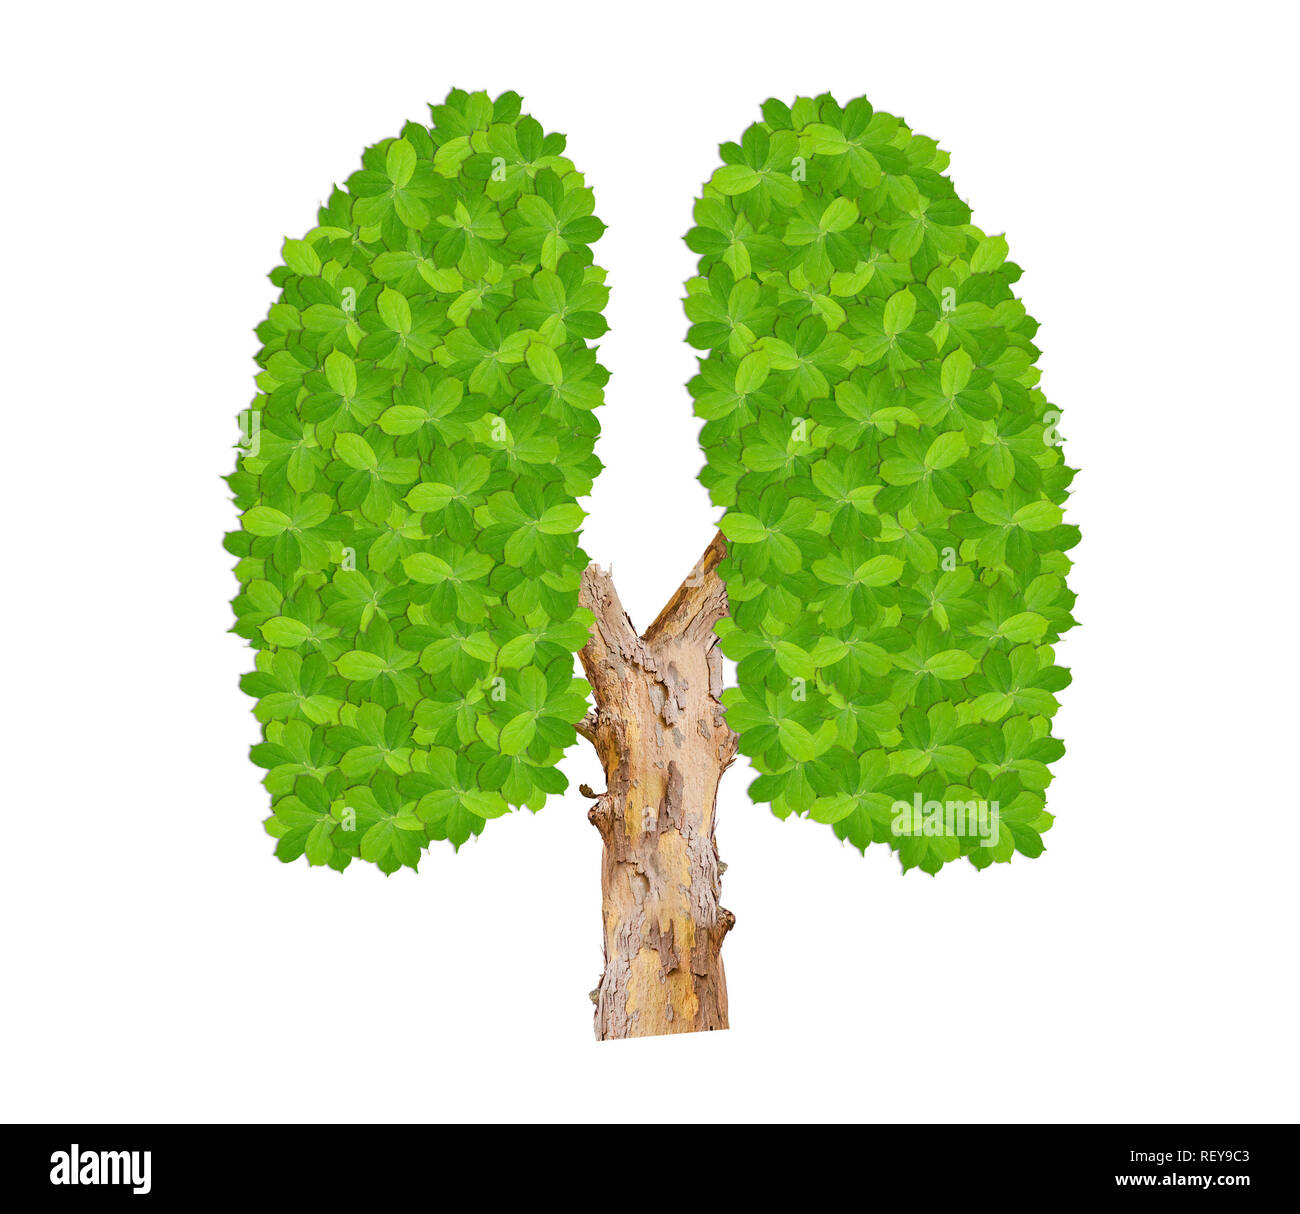 Green leaves lungs like symbol of ecology clean environmental isolated on white - Stock Image